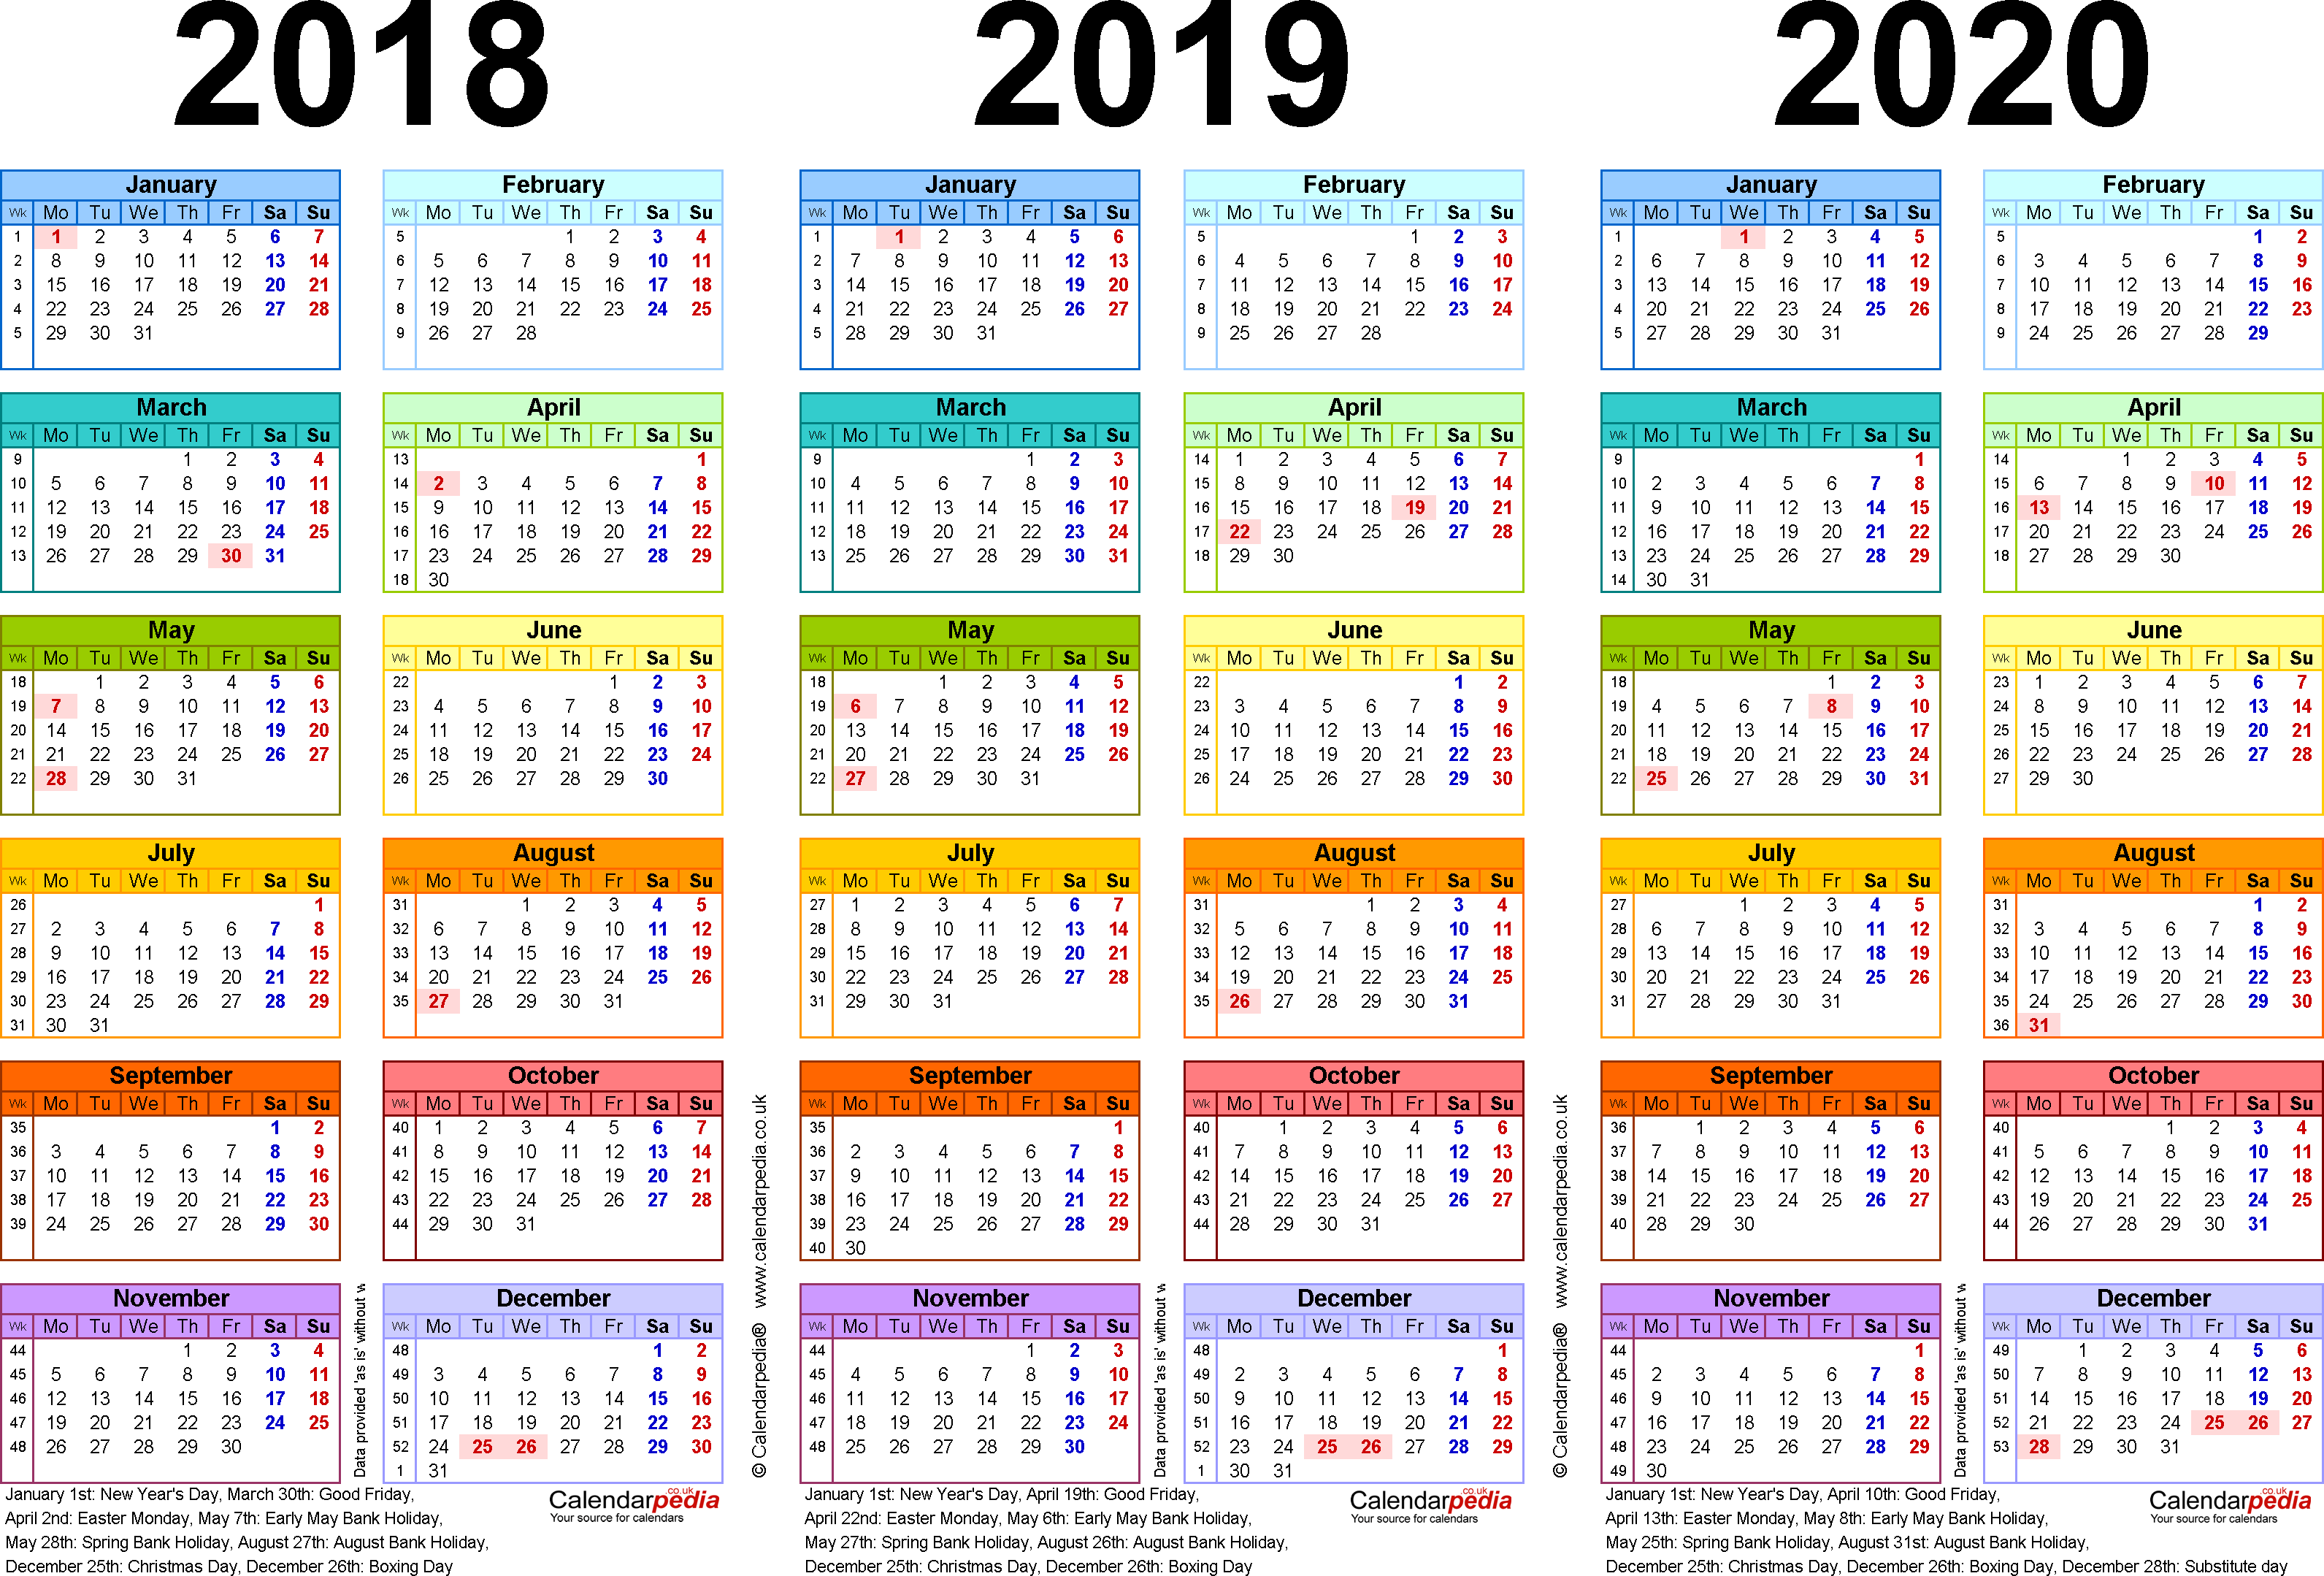 Download Template 1: Word template for three year calendar 2018-2020 in colour (landscape orientation, 1 page, A4)